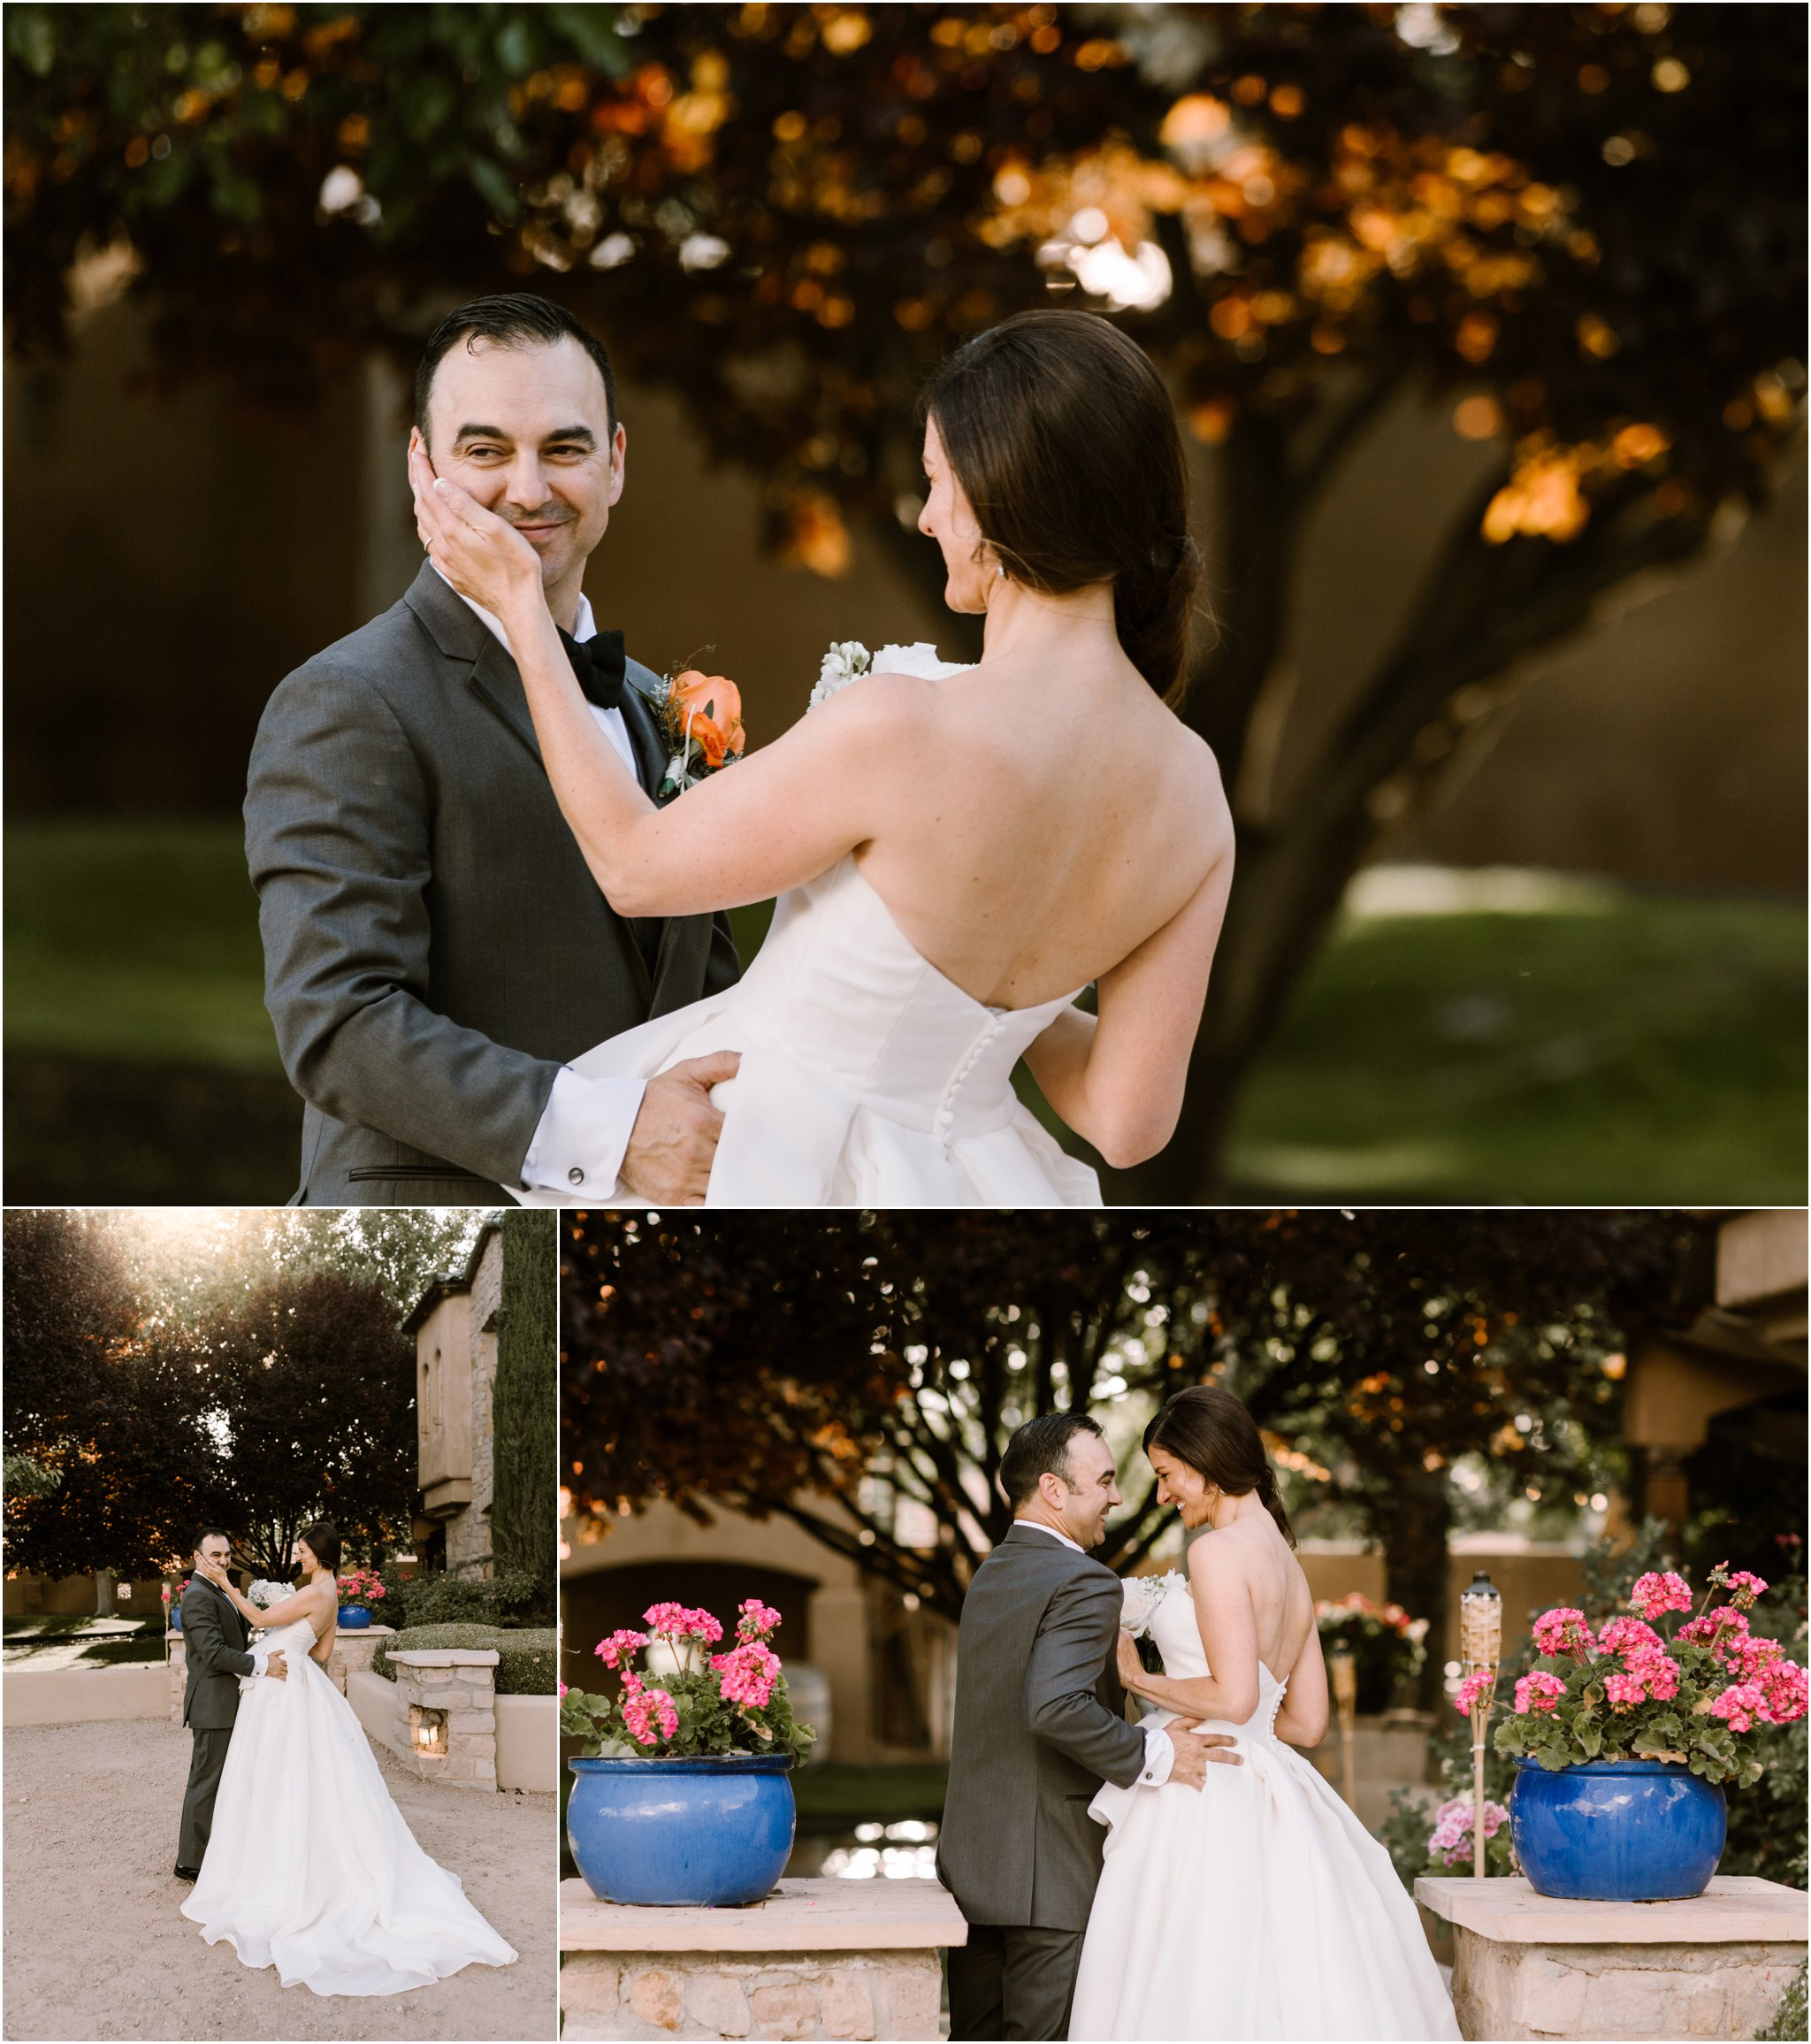 0212Casa Rodena Winery Wedding, Inn and Spa at Loretto wedding, Santa Fe wedding photographers, blue rose photography